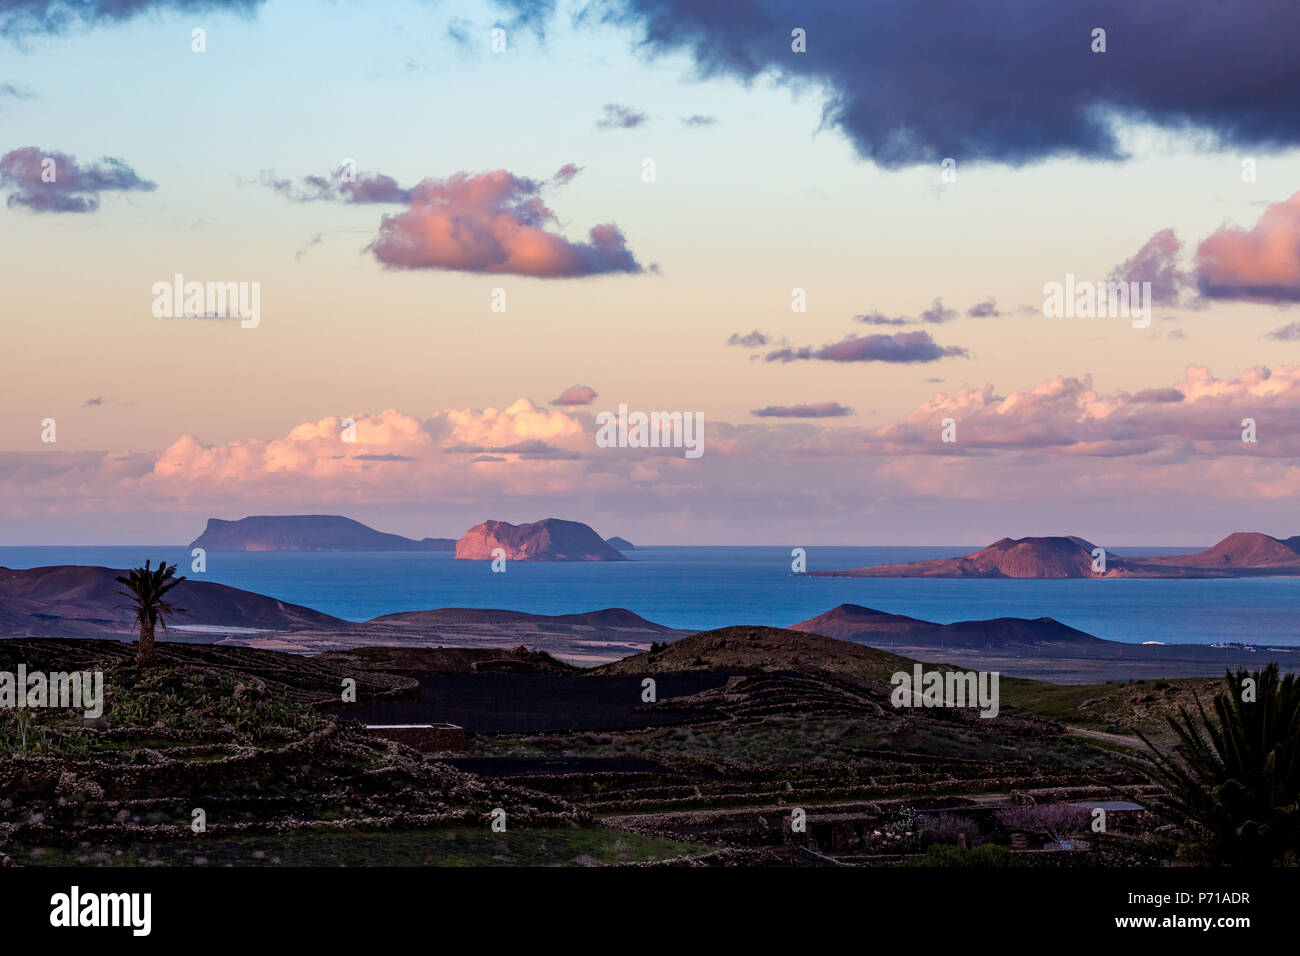 Elevated picturesque blue hour landscape from Lanzarote, high view towards the other Canary islands, Spain, after sunset with expressive sky full with beautiful pink clouds over the Atlantic Ocean - Stock Image